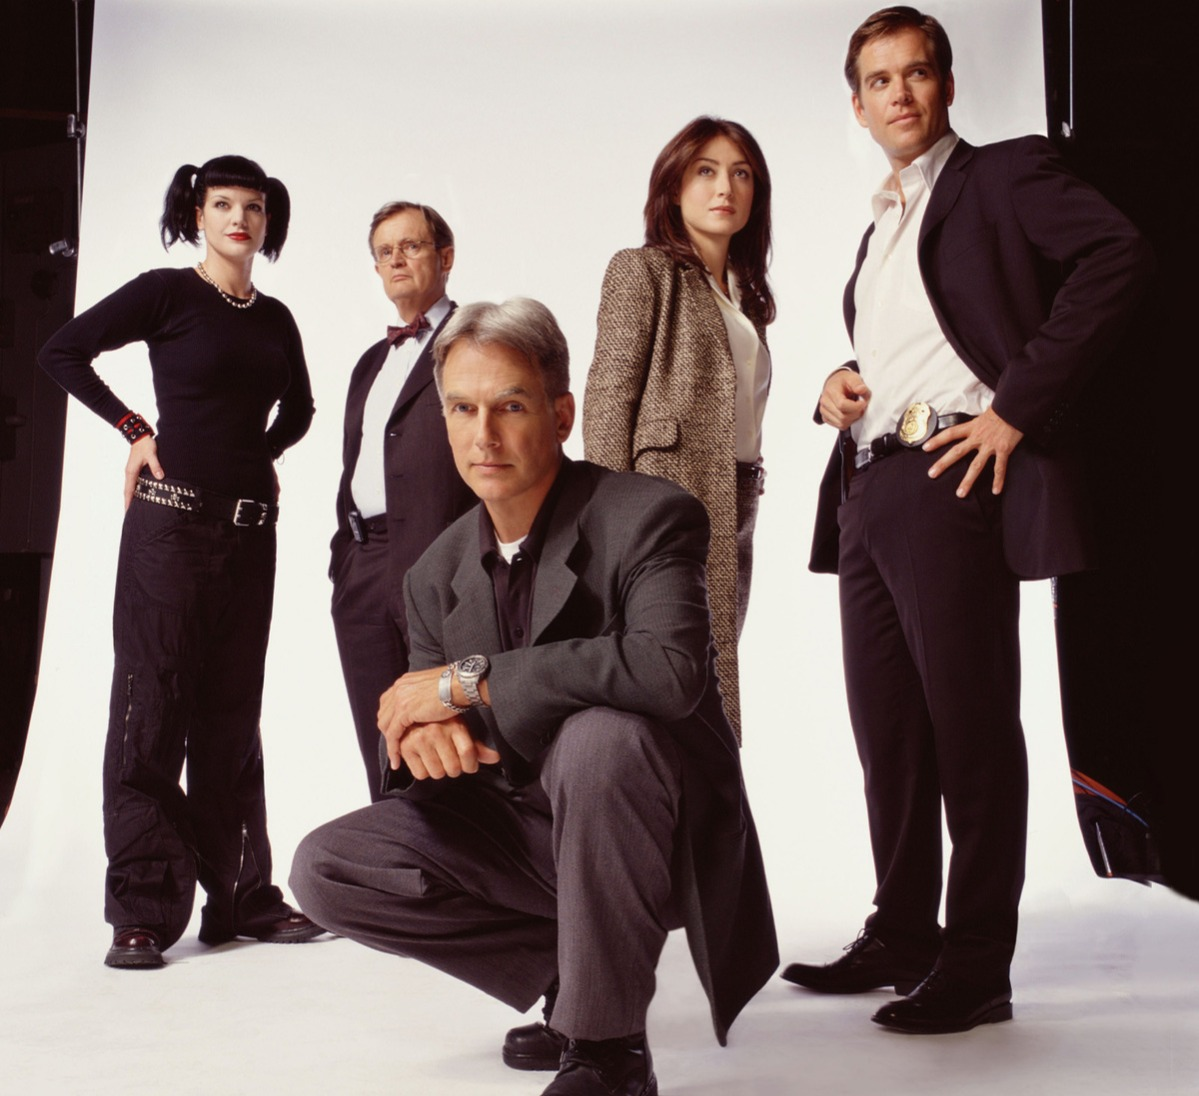 Mark Harmon, Pauley Perette, David McCallum, Sasha Alexander and Michael Weatherly star in NAVY NCIS